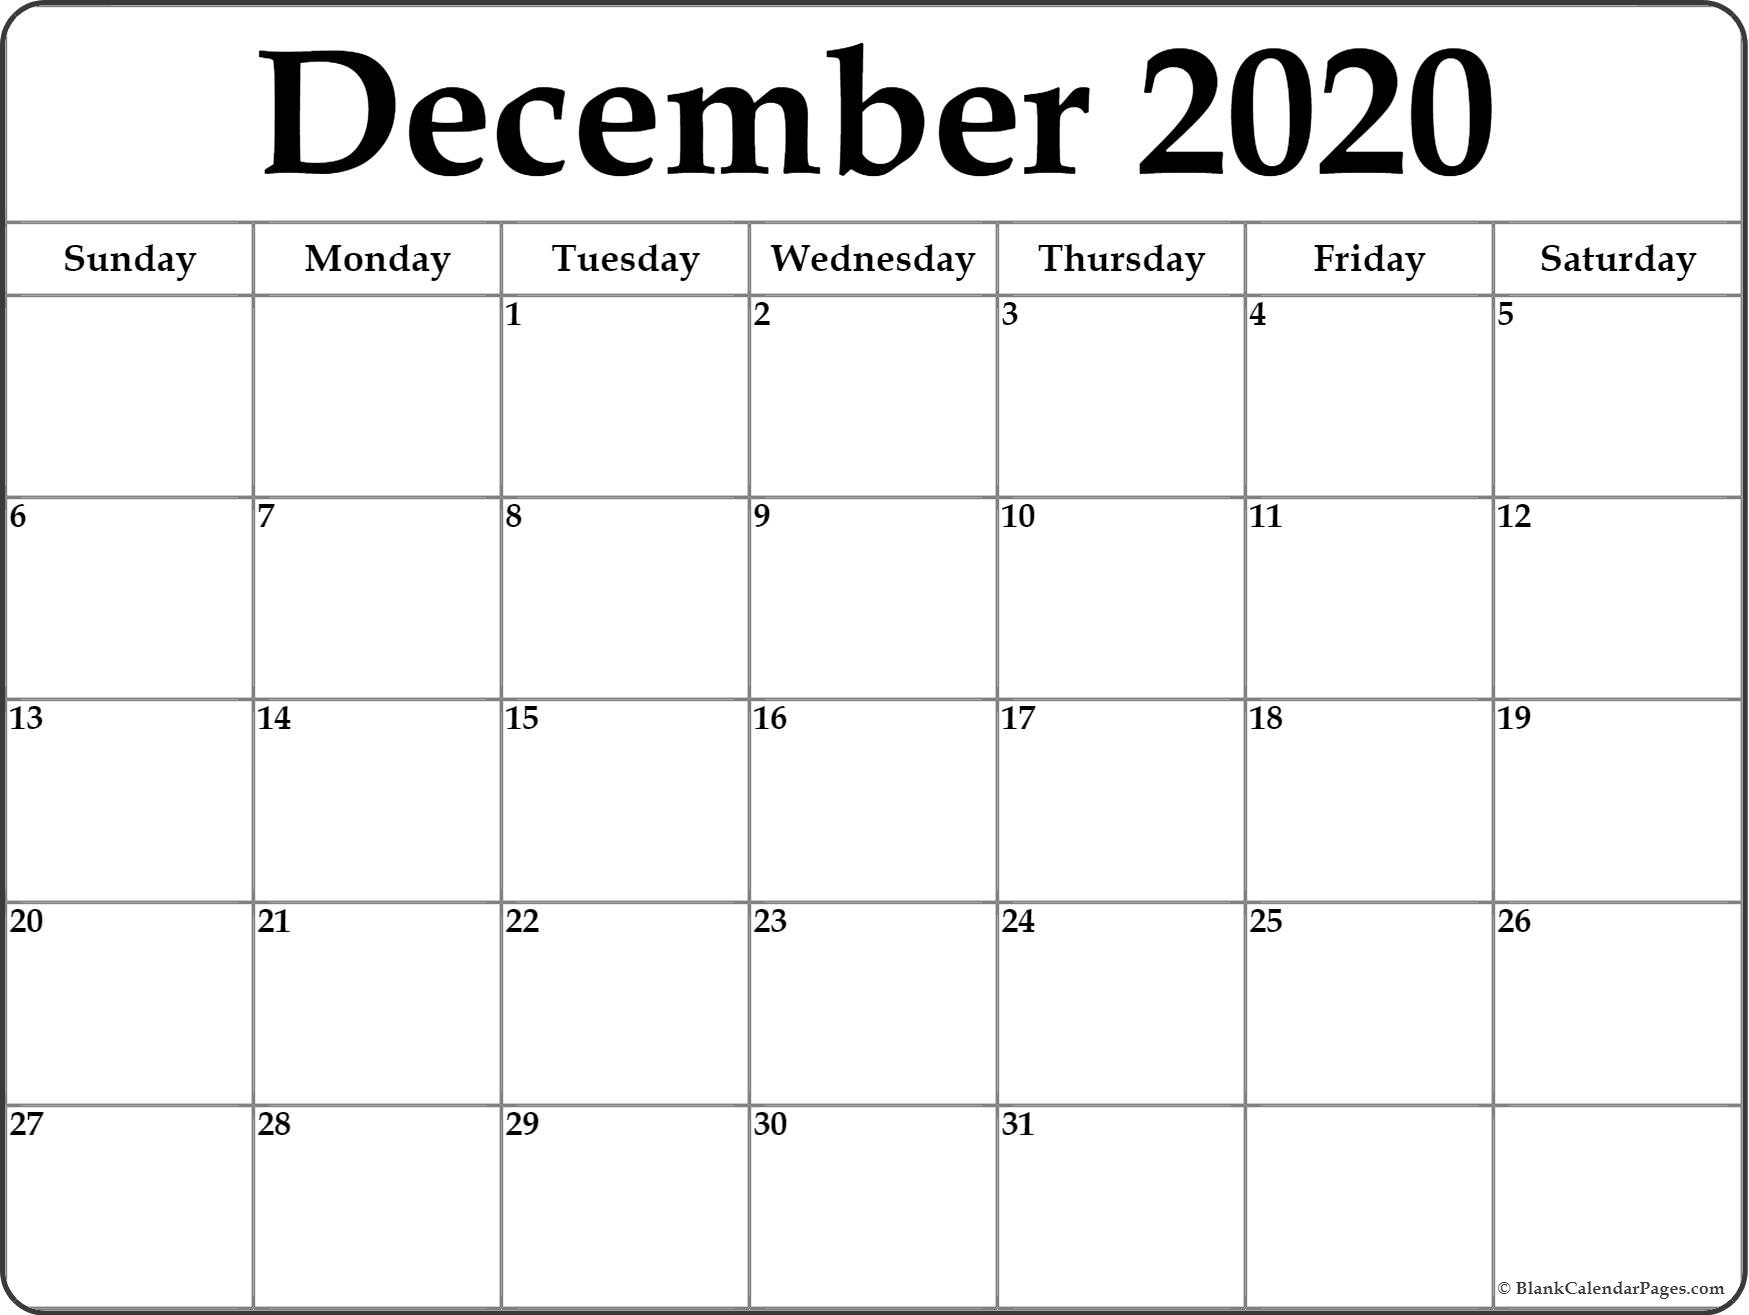 December 2020 Calendar | Free Printable Monthly Calendars pertaining to Printable Month At A Glance Calendar 2020